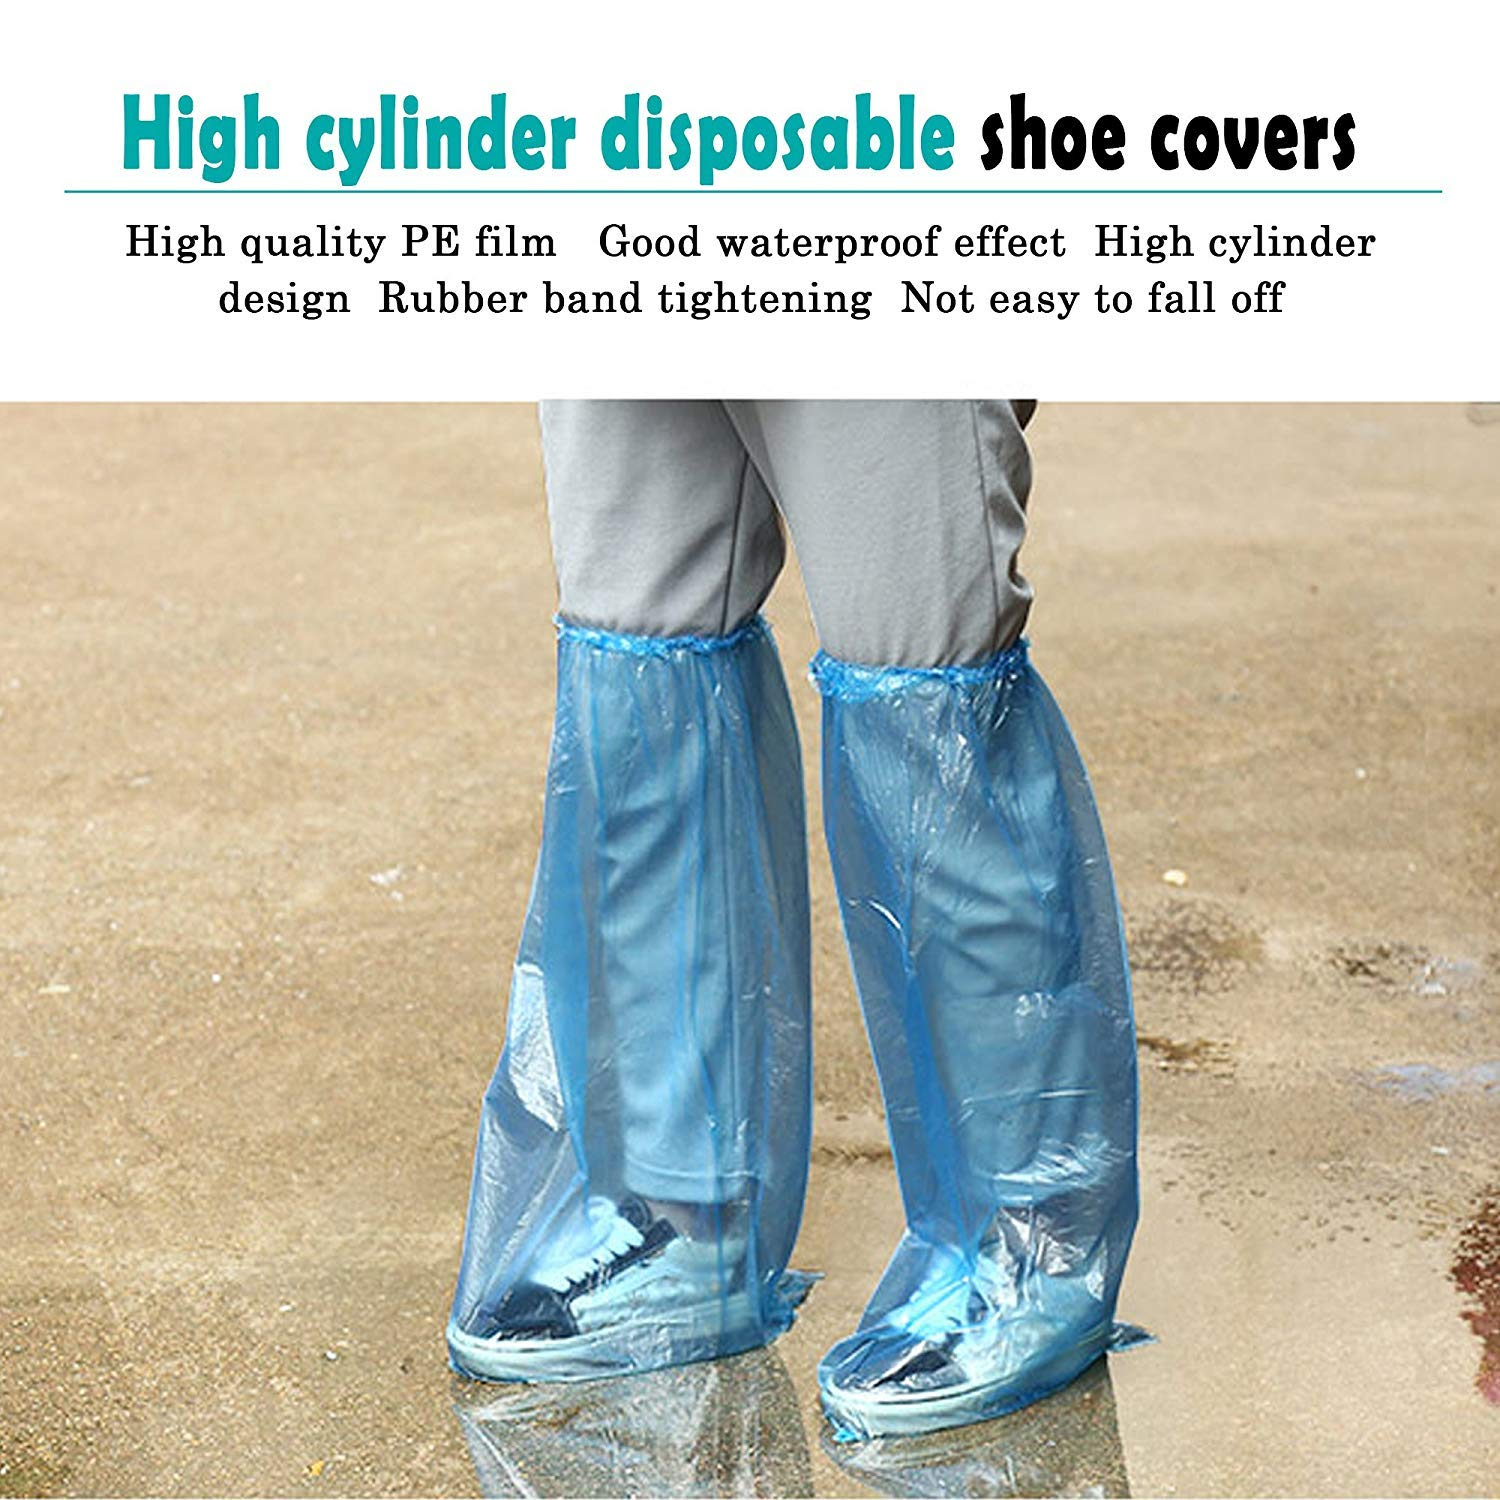 HUABEI 10 Pack Disposable Shoe Covers Blue Rain Shoes and Boots Cover Plastic Long Shoe Cover Clear Waterproof Anti-Slip Overshoe for Women Men Water Boots Cover Rainy Day Use Cover